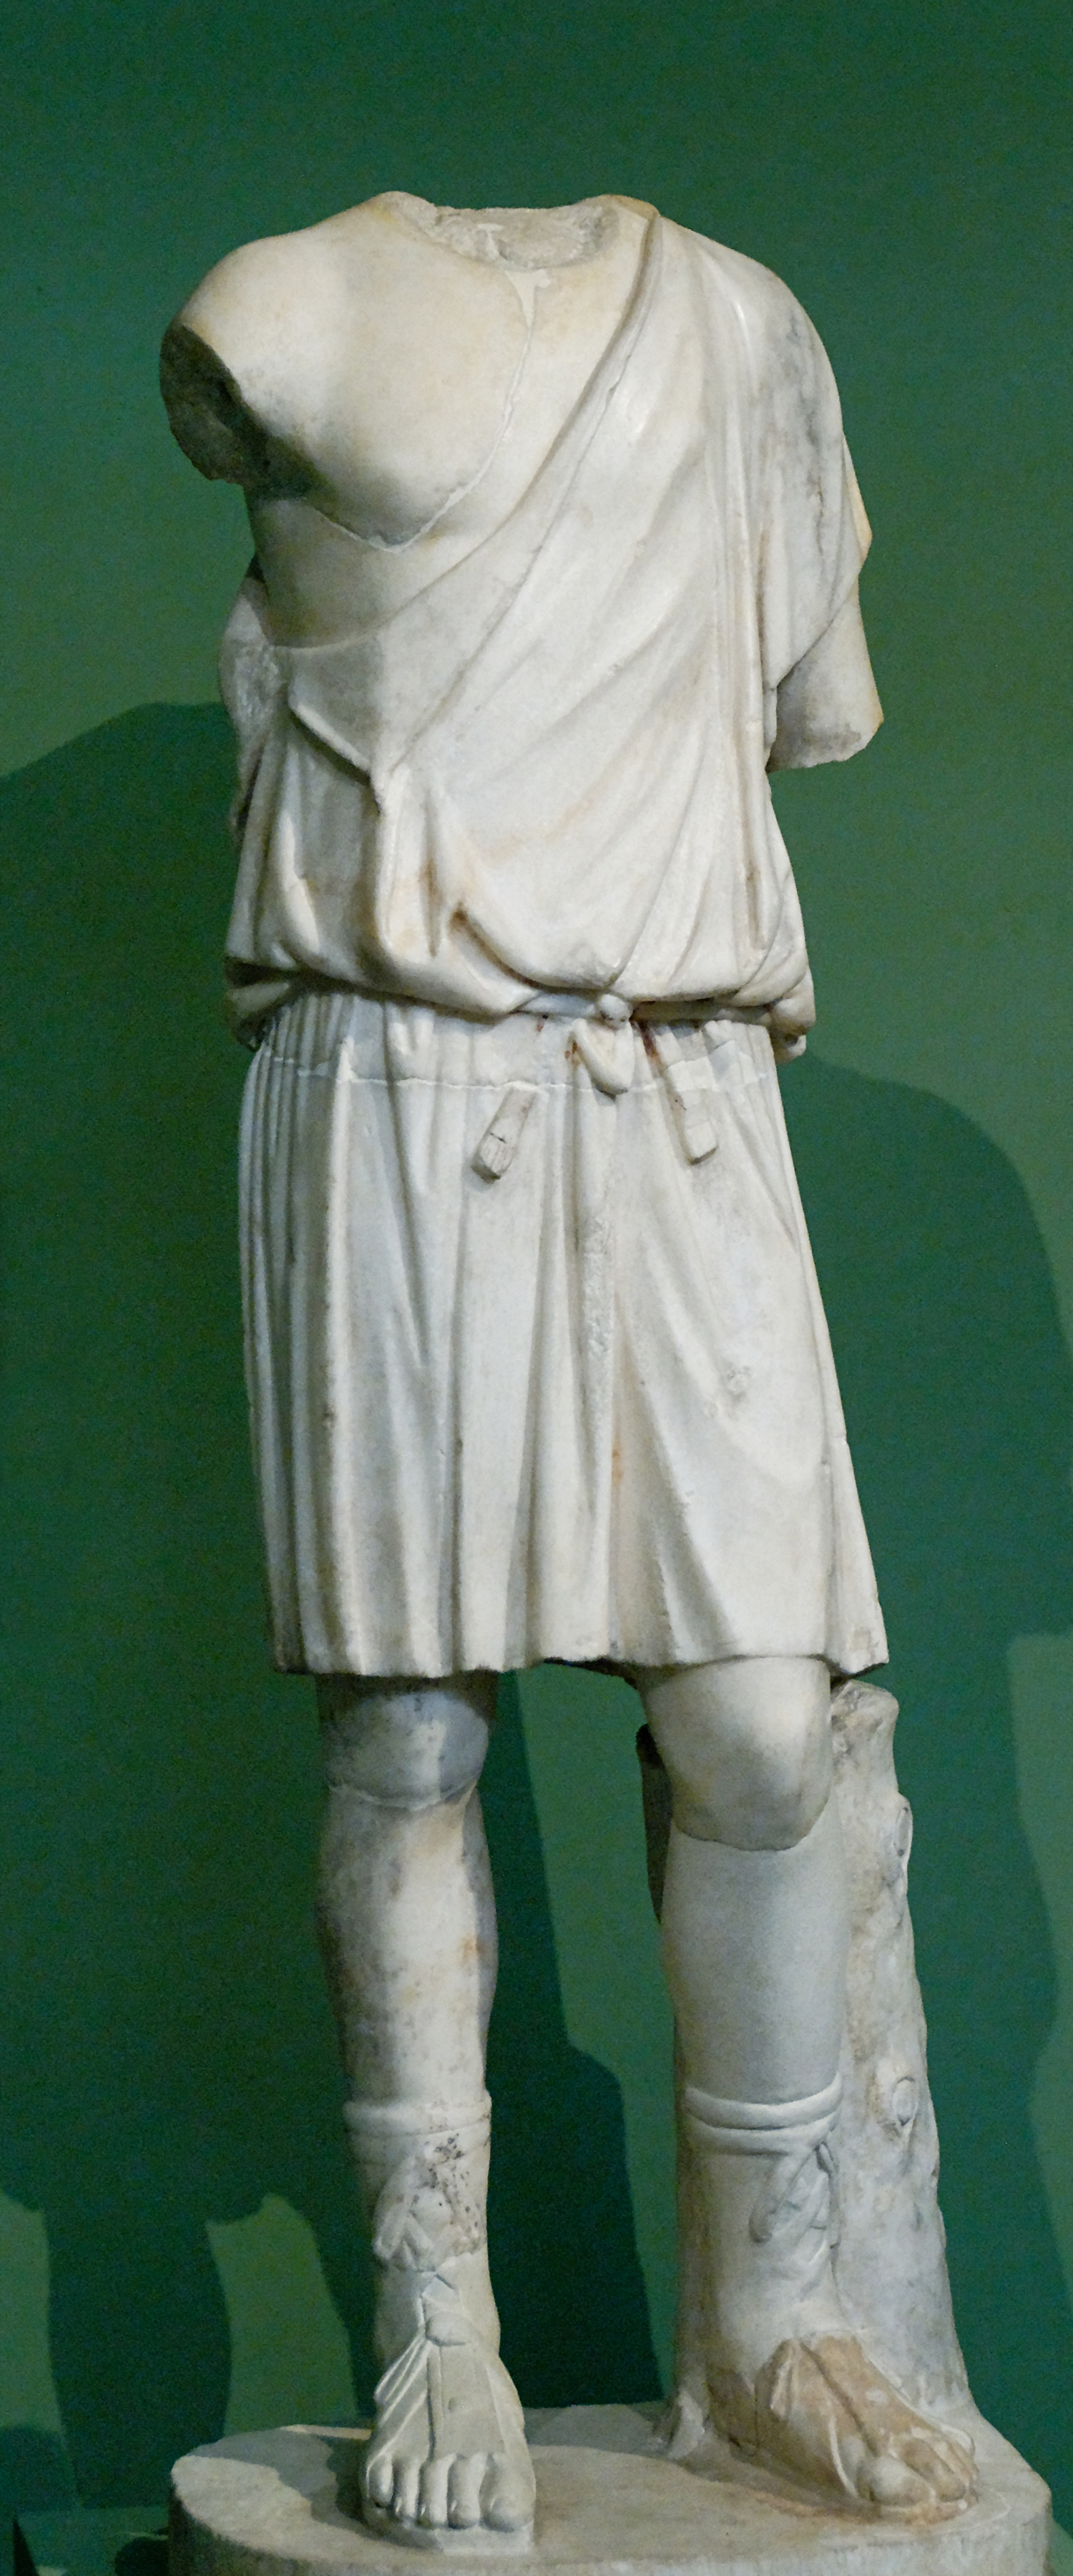 Young_man_exomis_Musei_Capitolini_MC892.jpg